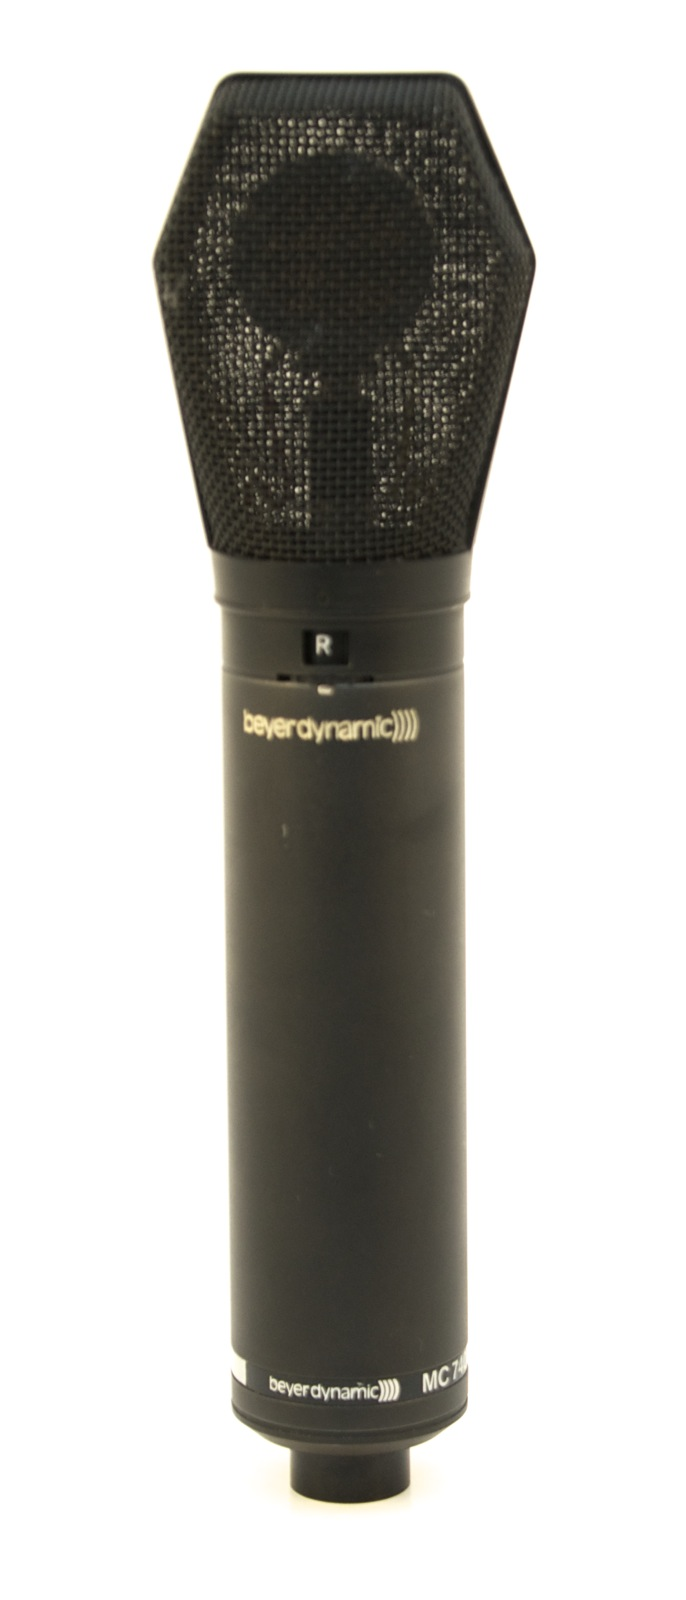 Beyerdynamic MC 740 N